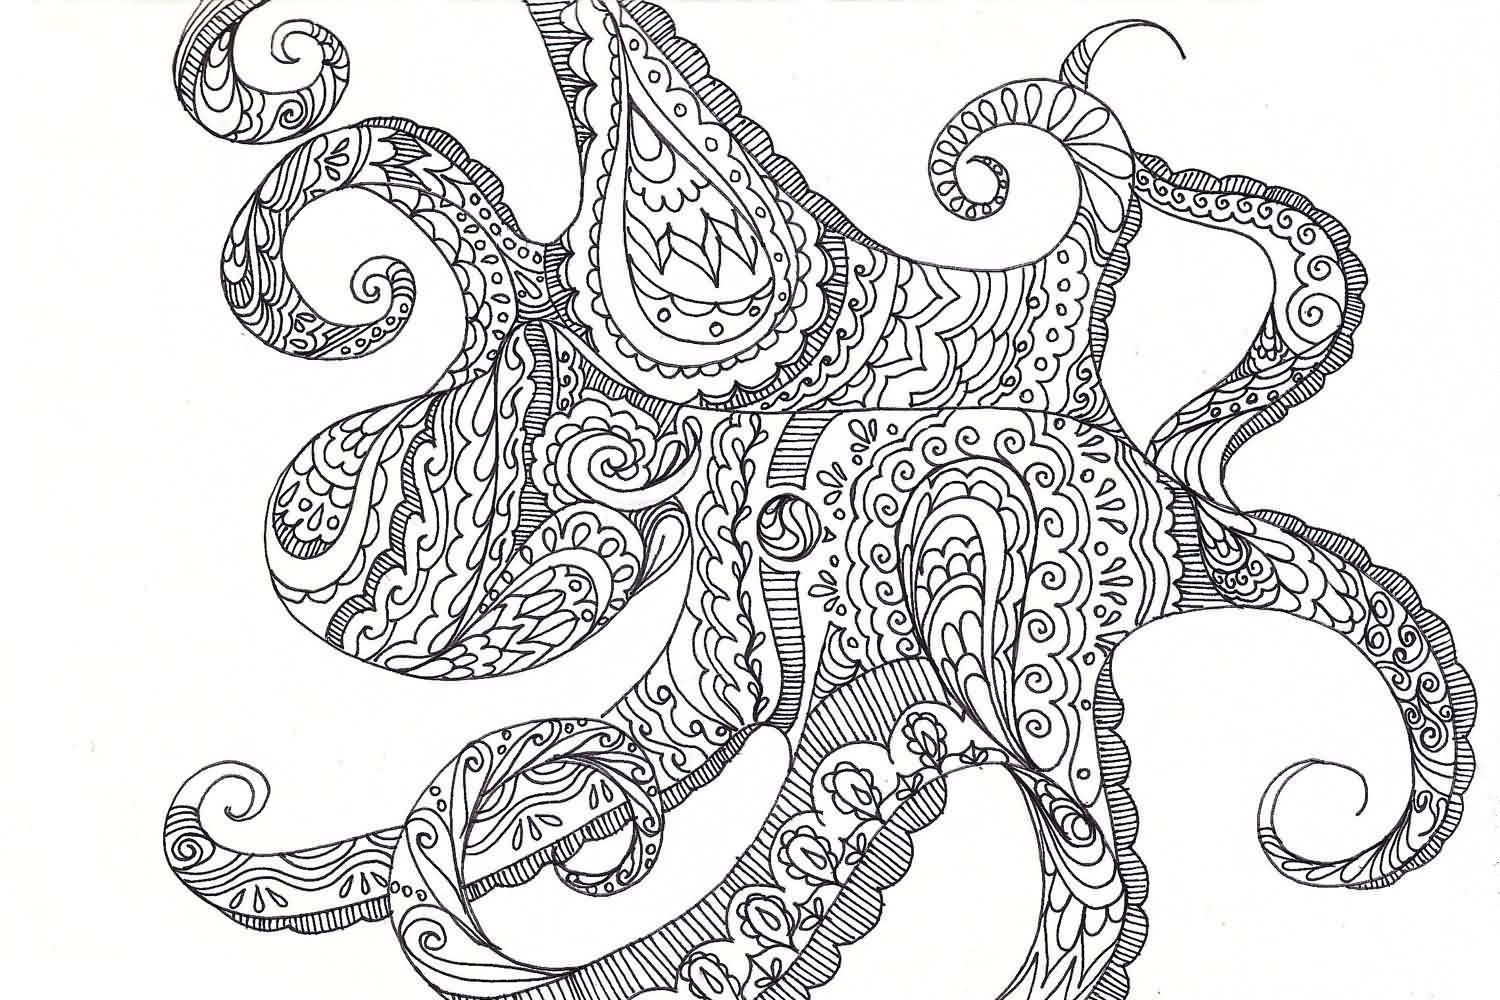 HD wallpapers aquarius coloring pages